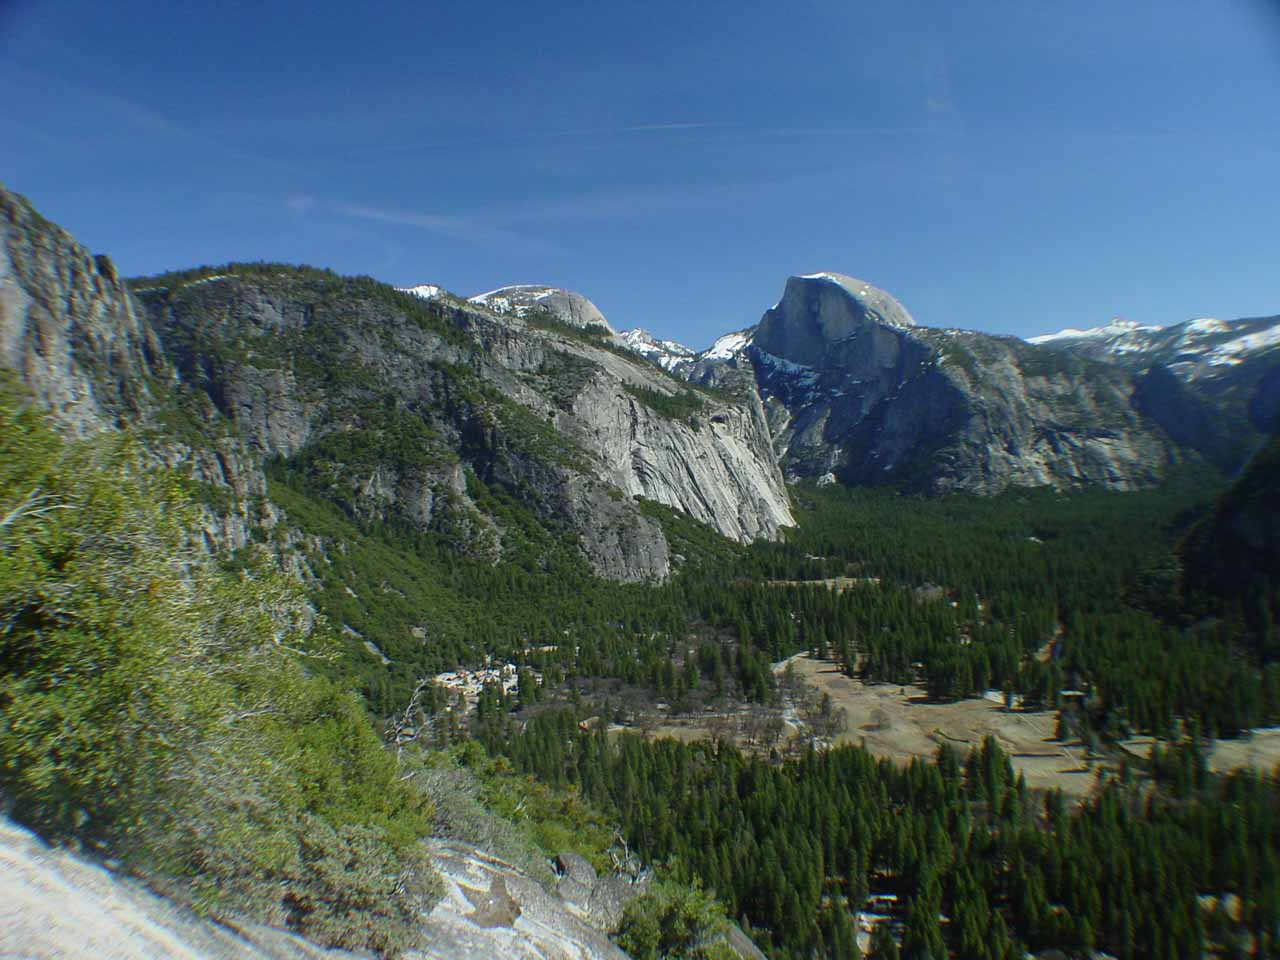 View of Yosemite Valley from Columbia Point